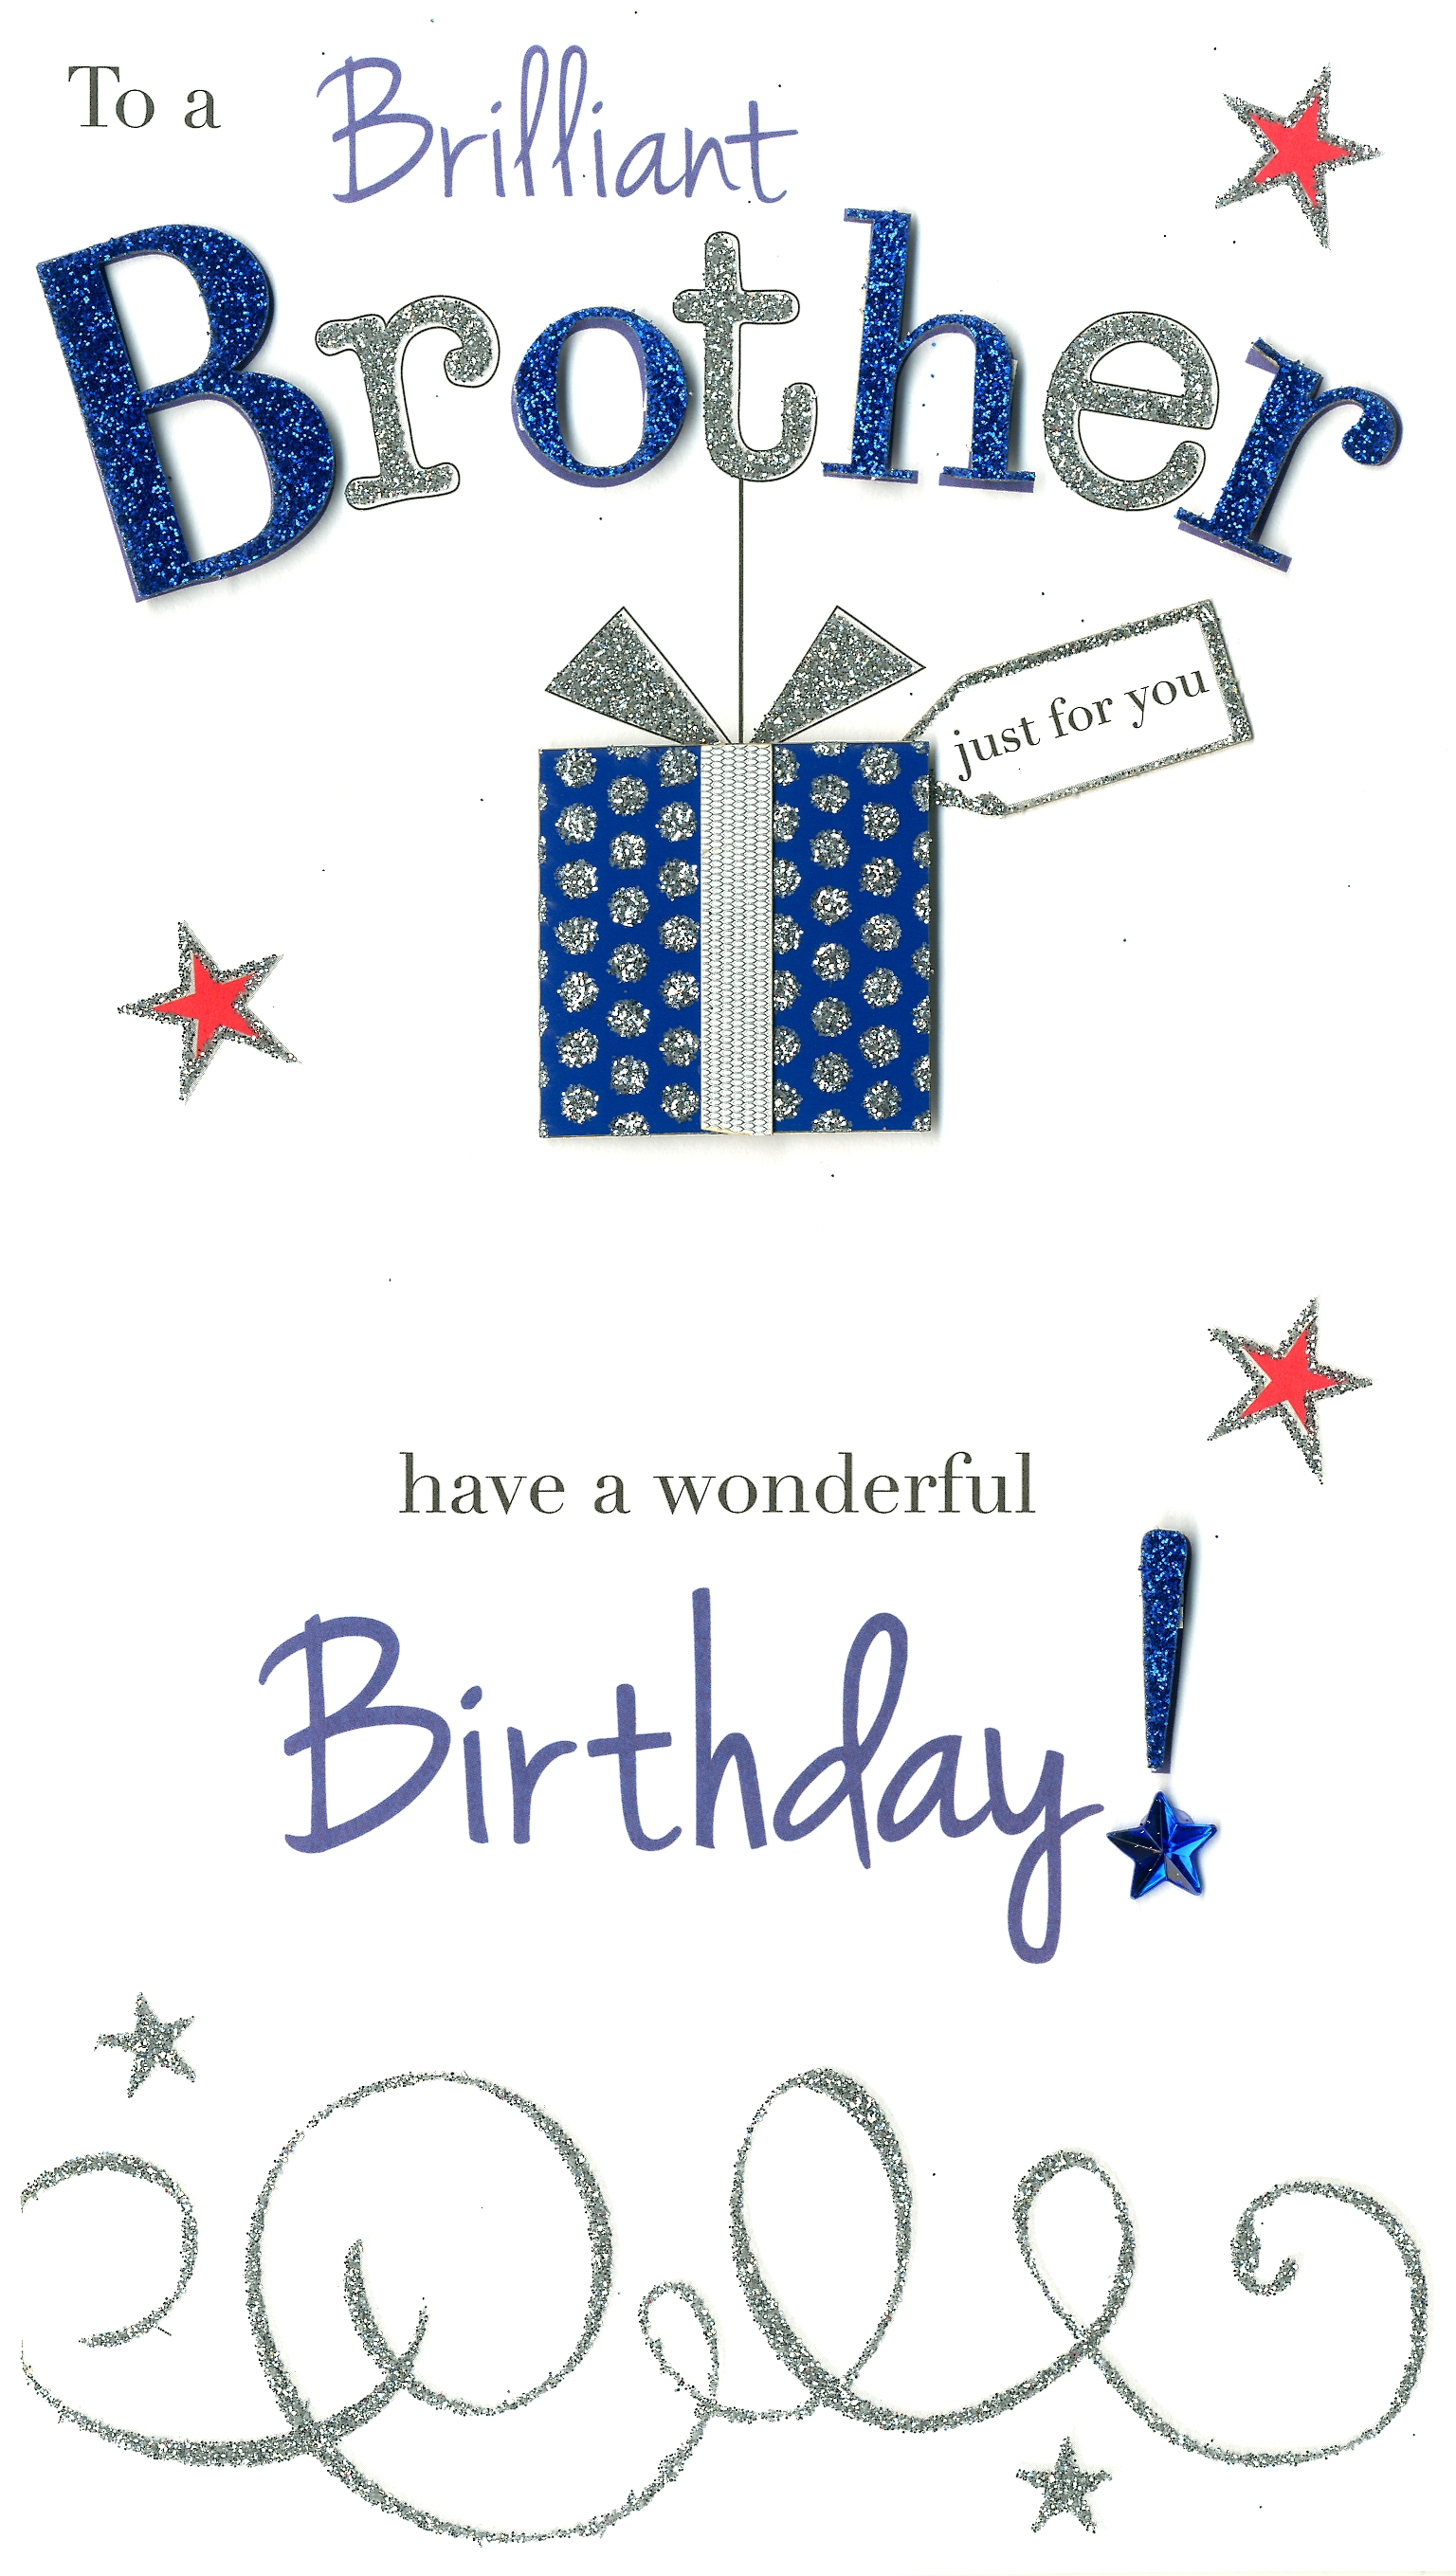 Brilliant Brother Wonderful Birthday Greeting Card Cards Love Kates